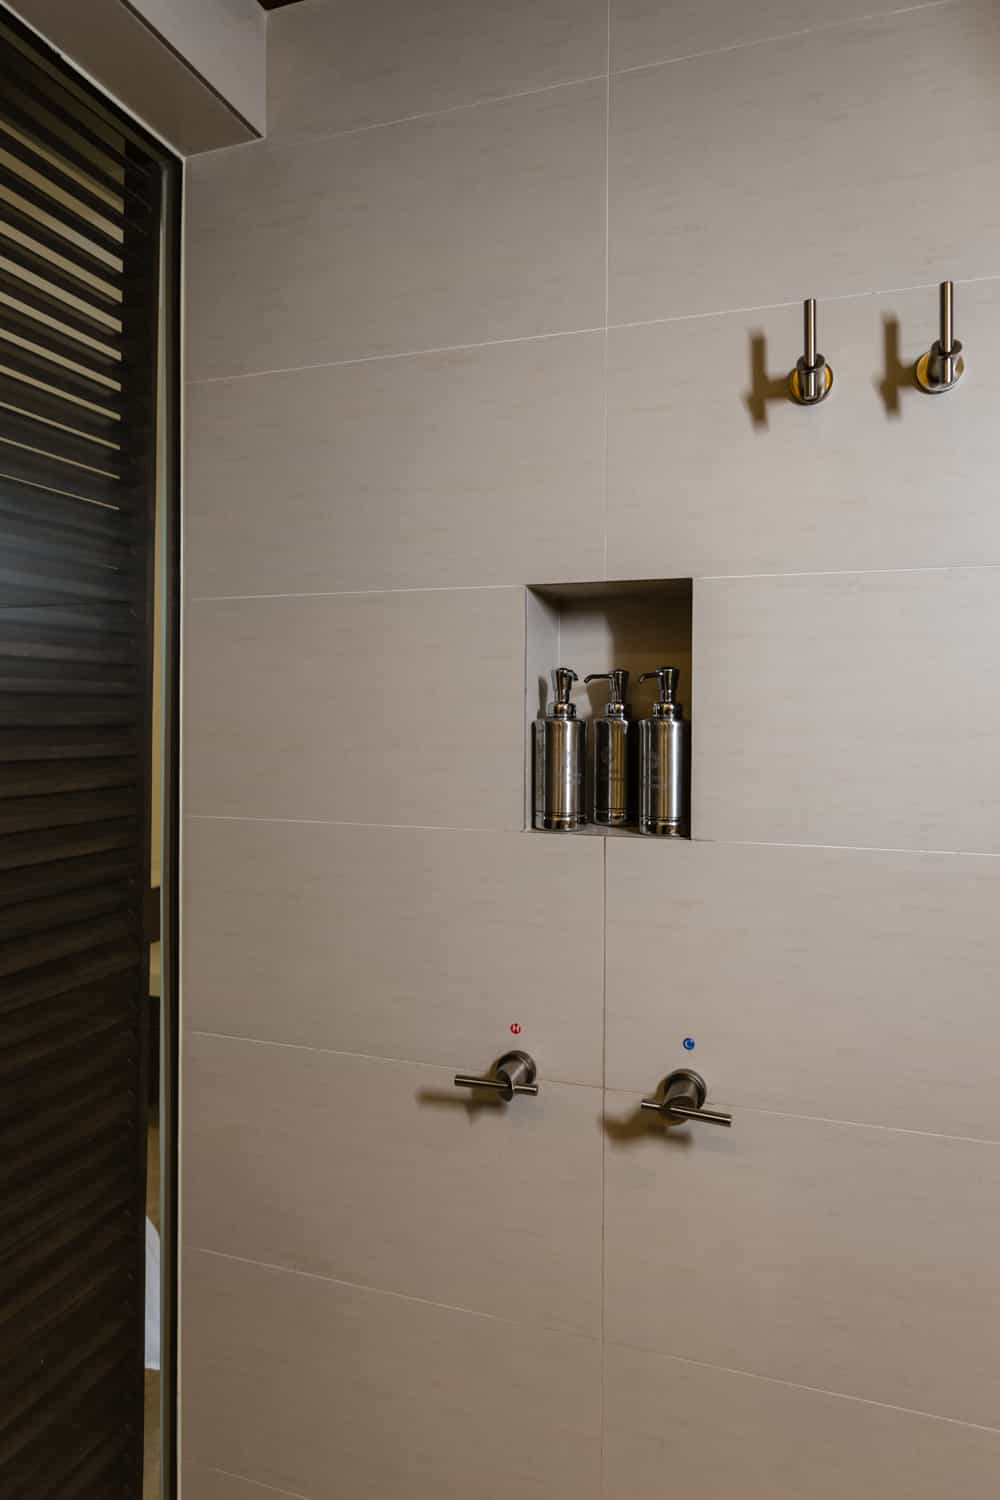 Shower niche and towel holders in beautiful guest room shower.